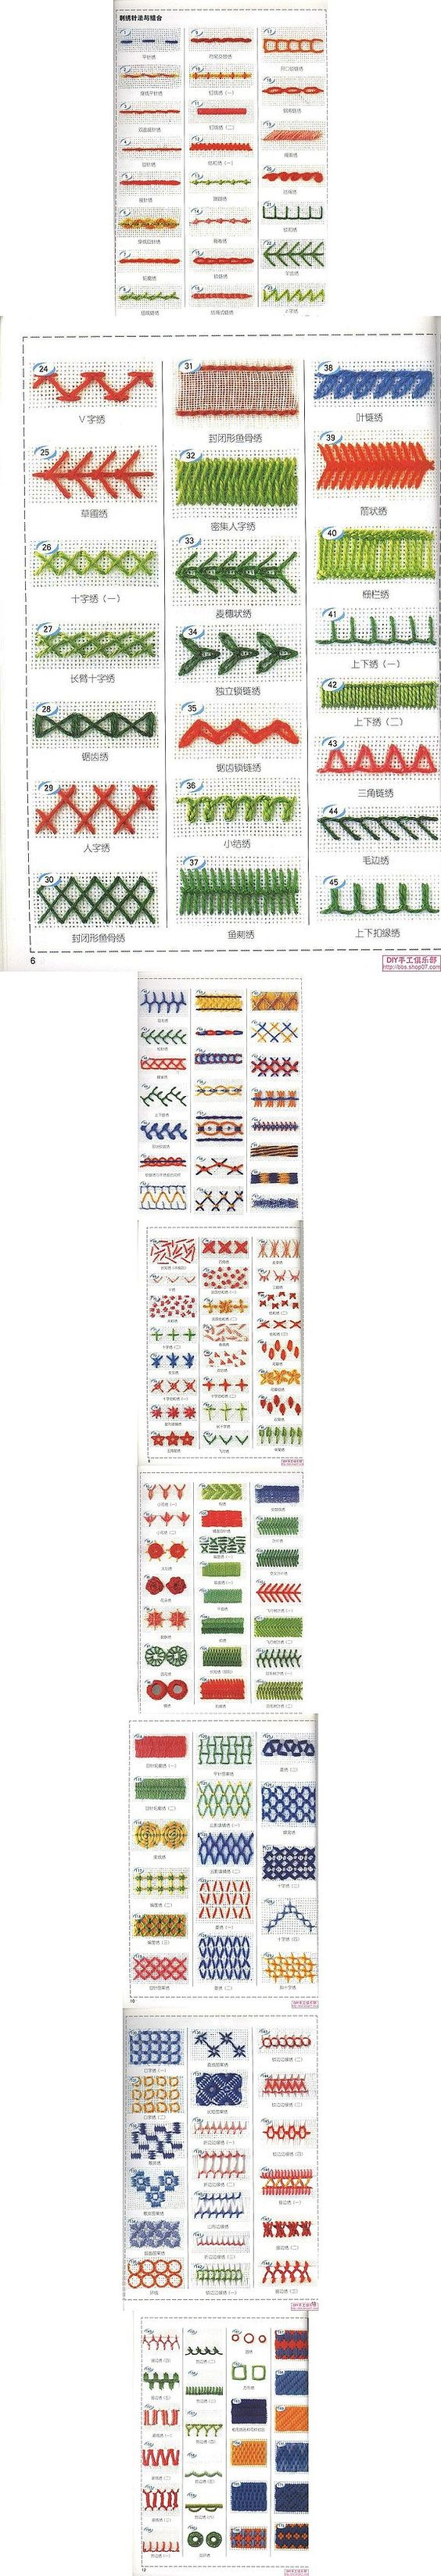 Best ideas about stitches nice chart and